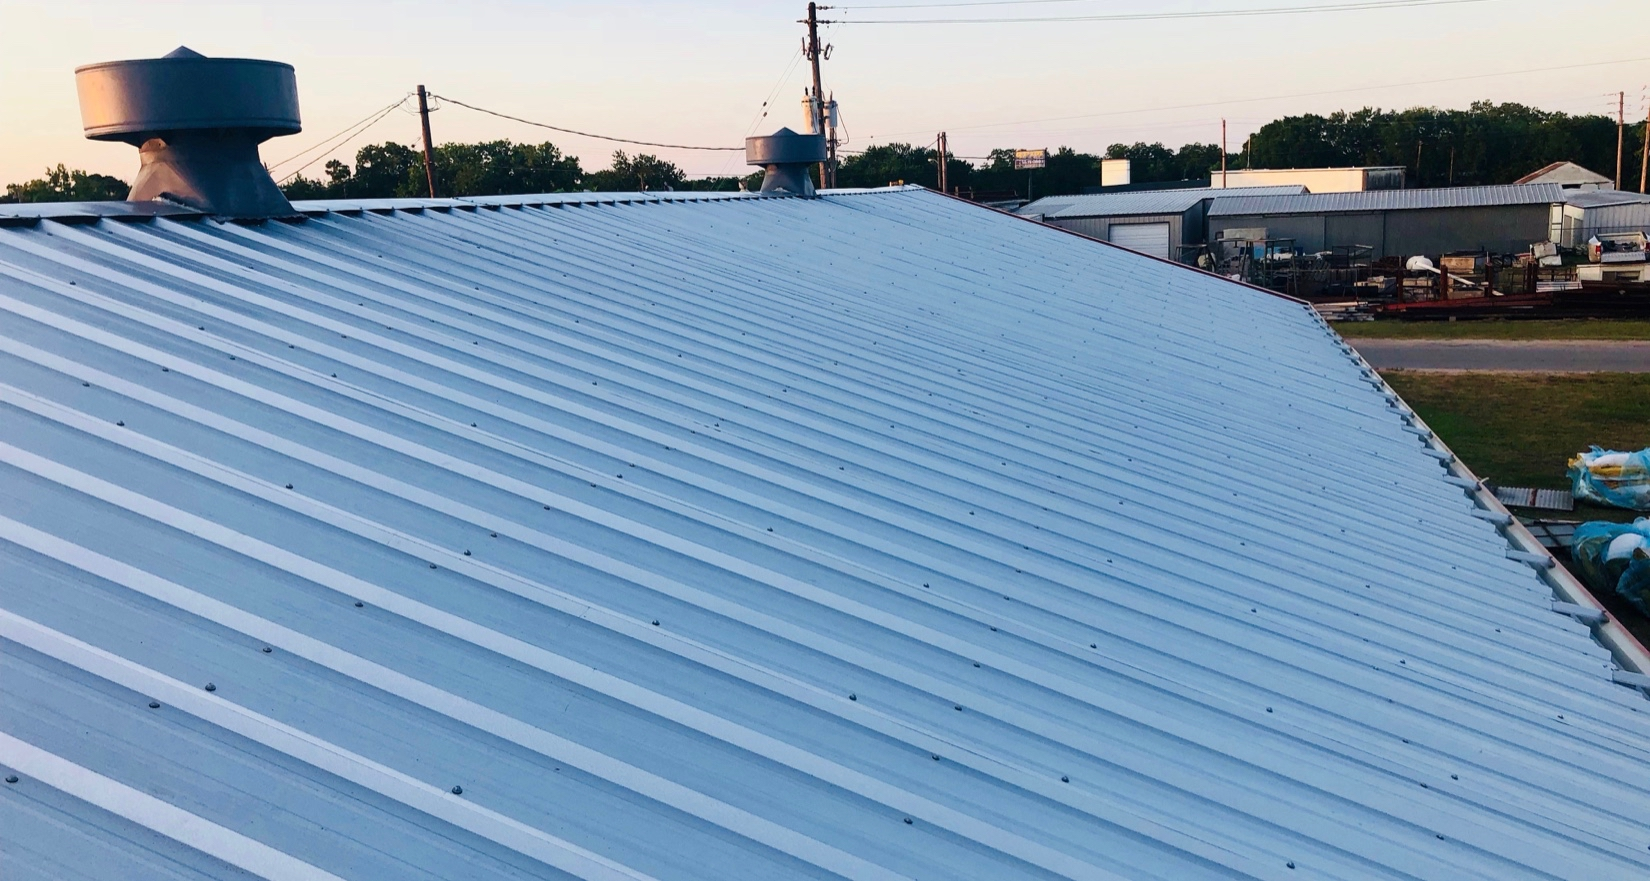 The roof looked great also, we re-used the building owners ridge vents.